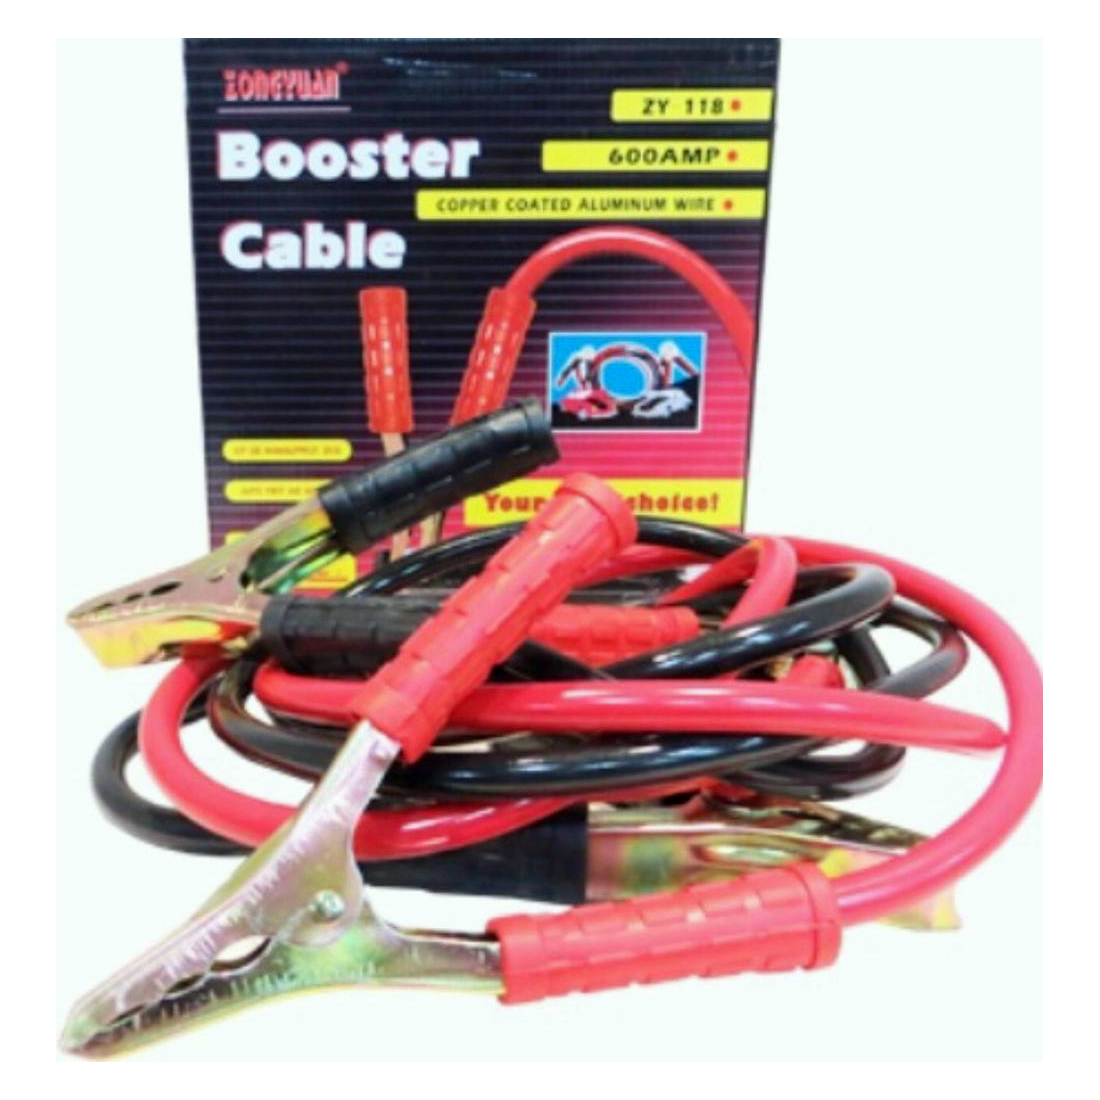 Booster-Cable-600A